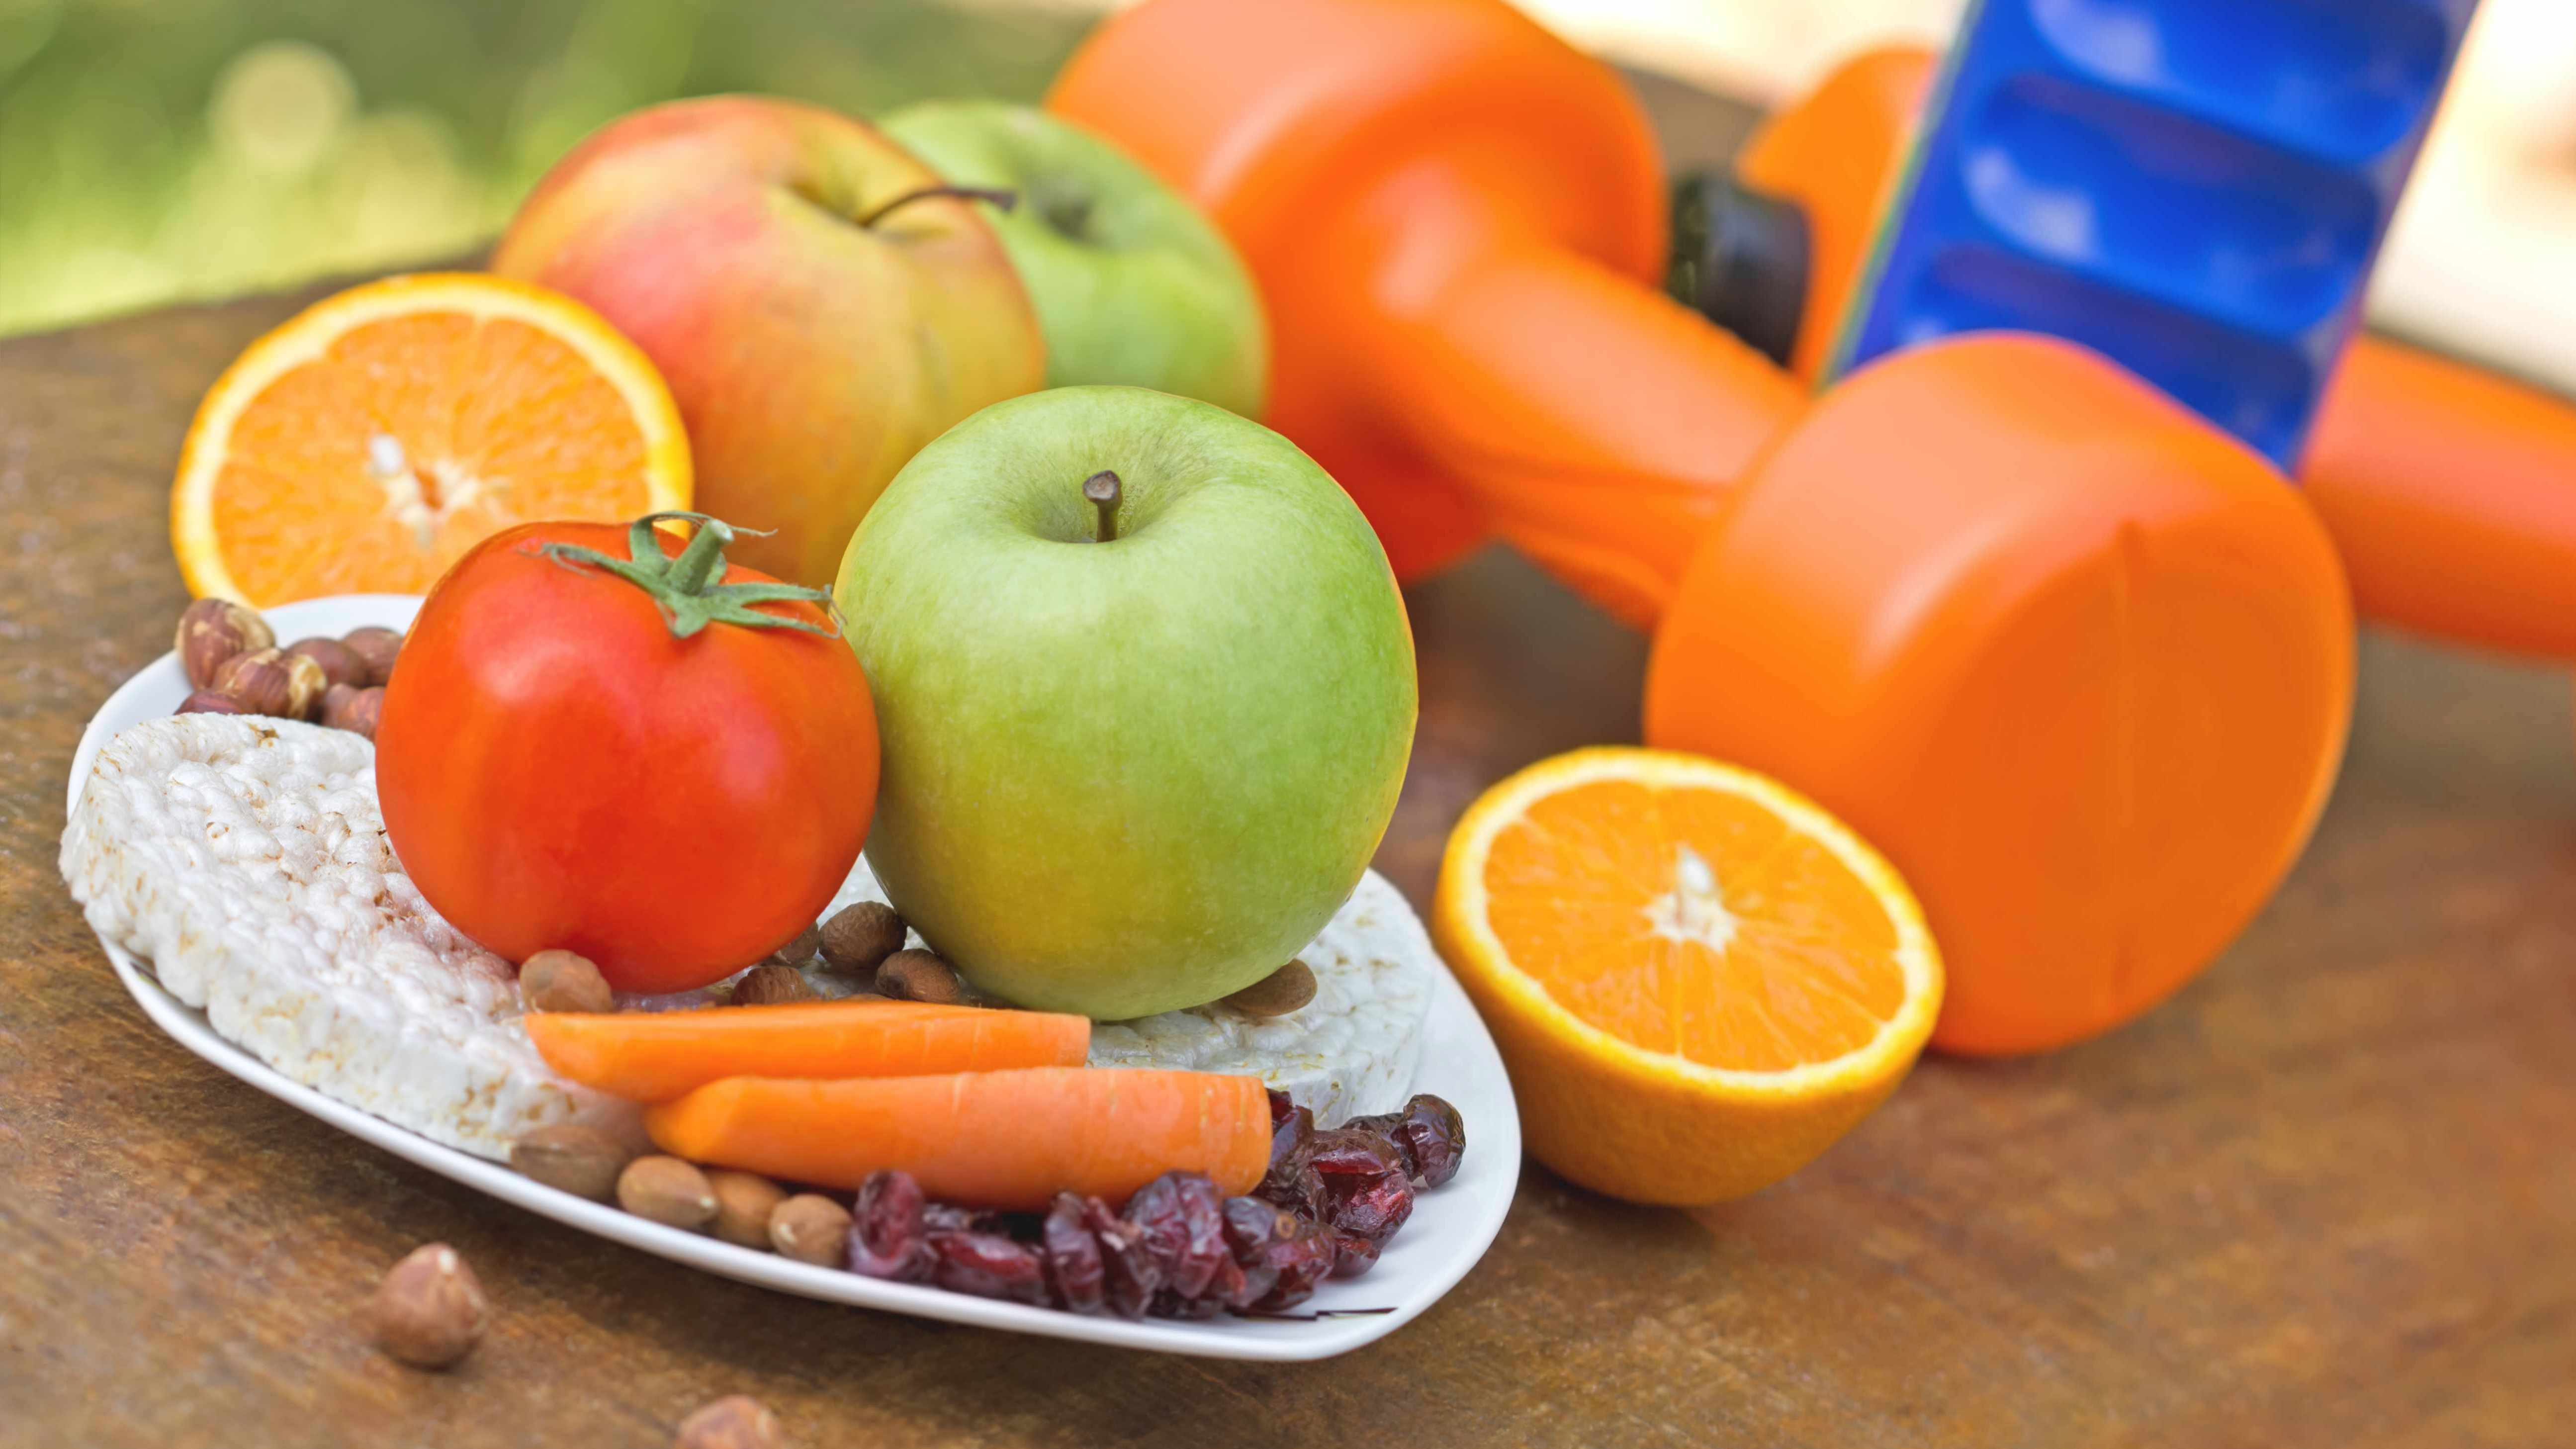 image of fruits, vegetables and hand weights representing healthy lifestyle